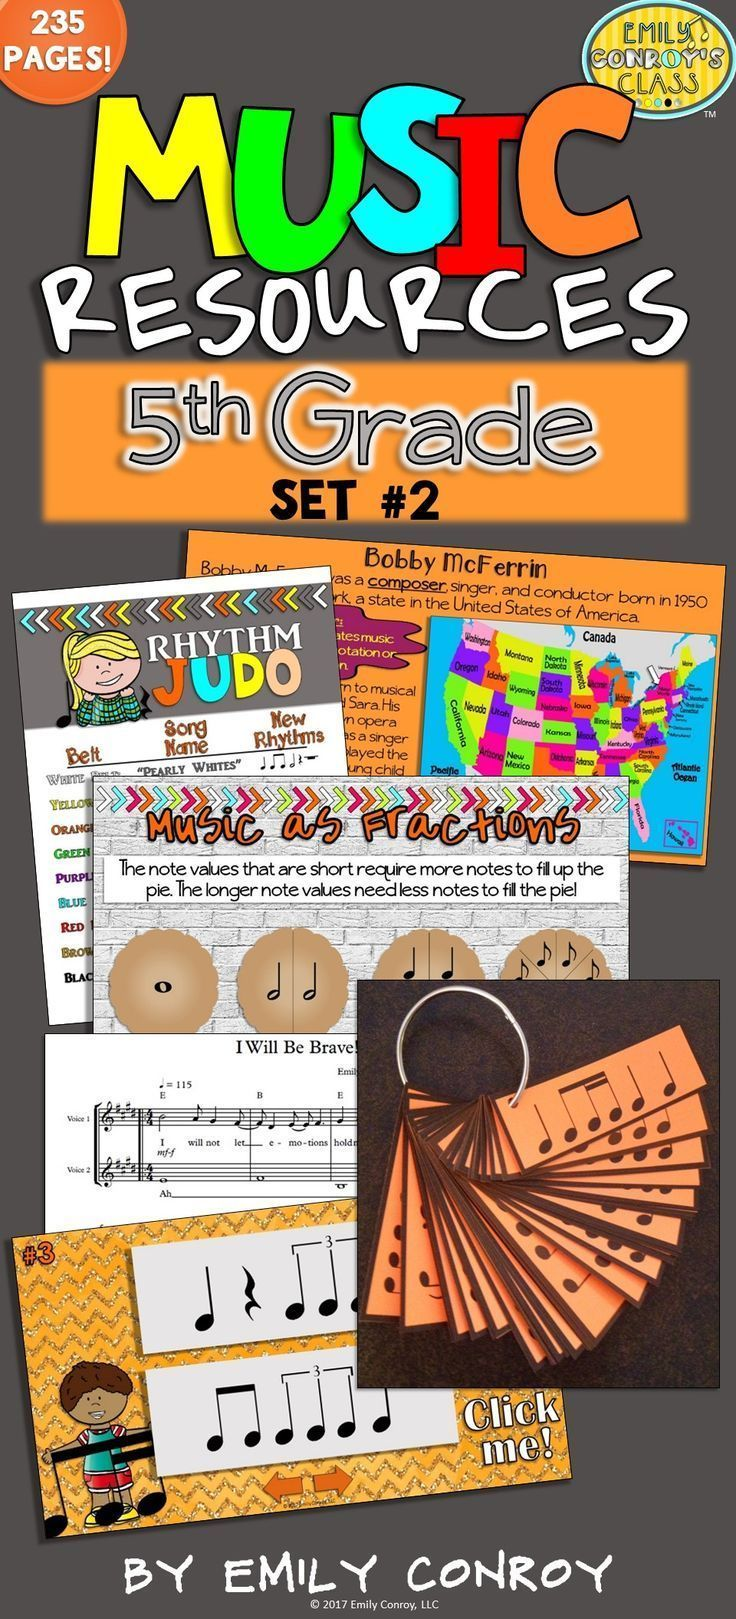 Struggling to find music activities for your 5th grade students or kids? This set contains 235 pages of worksheets, PowerPoints, songs, and games for 5th Grade music students! The songs even come with piano accompaniment and MP3 sound files!